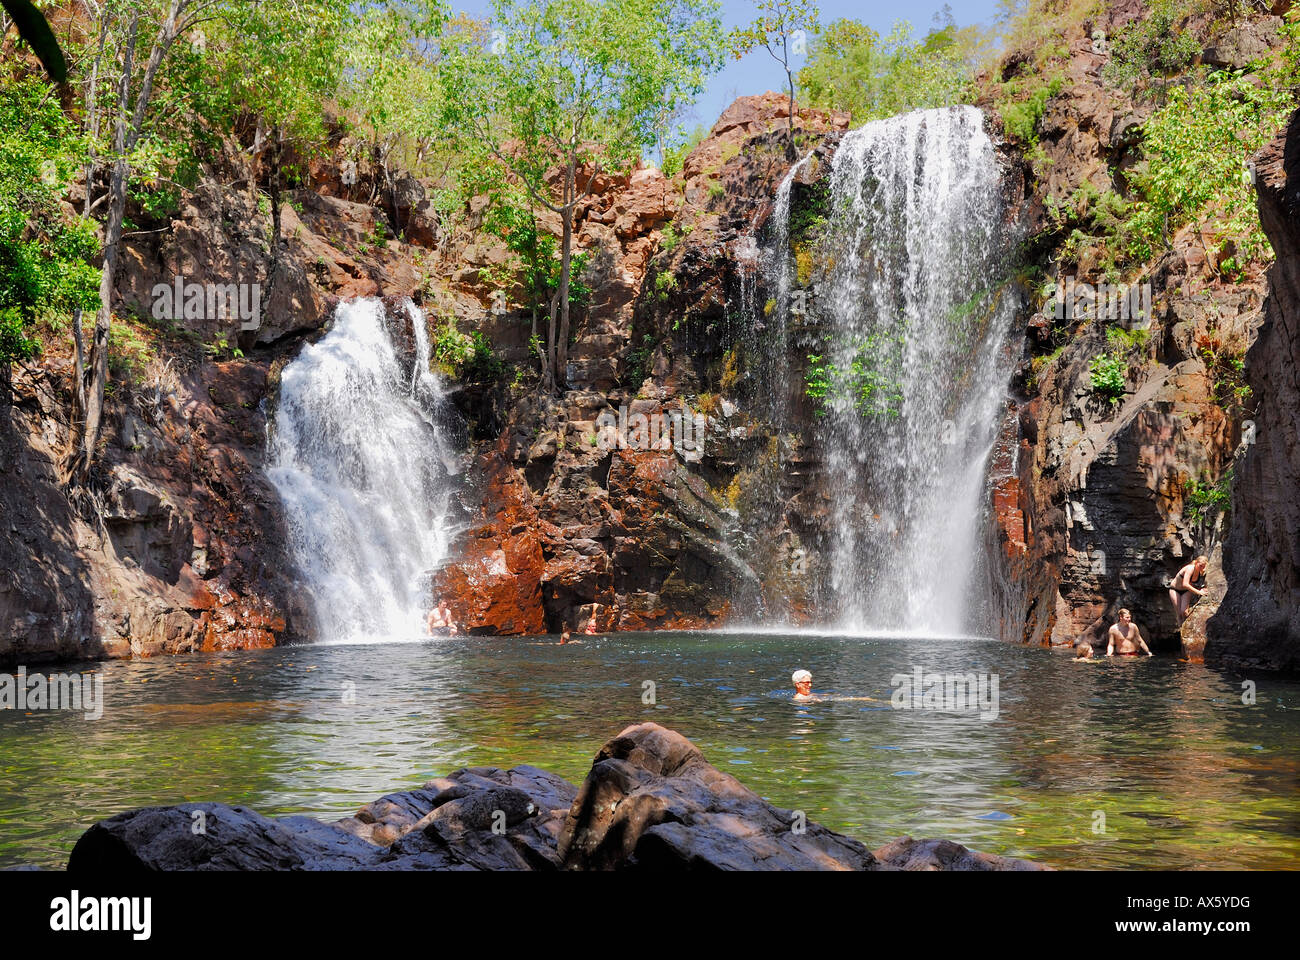 Florence Falls, Litchfield National Park, Northern Territory, Australia - Stock Image